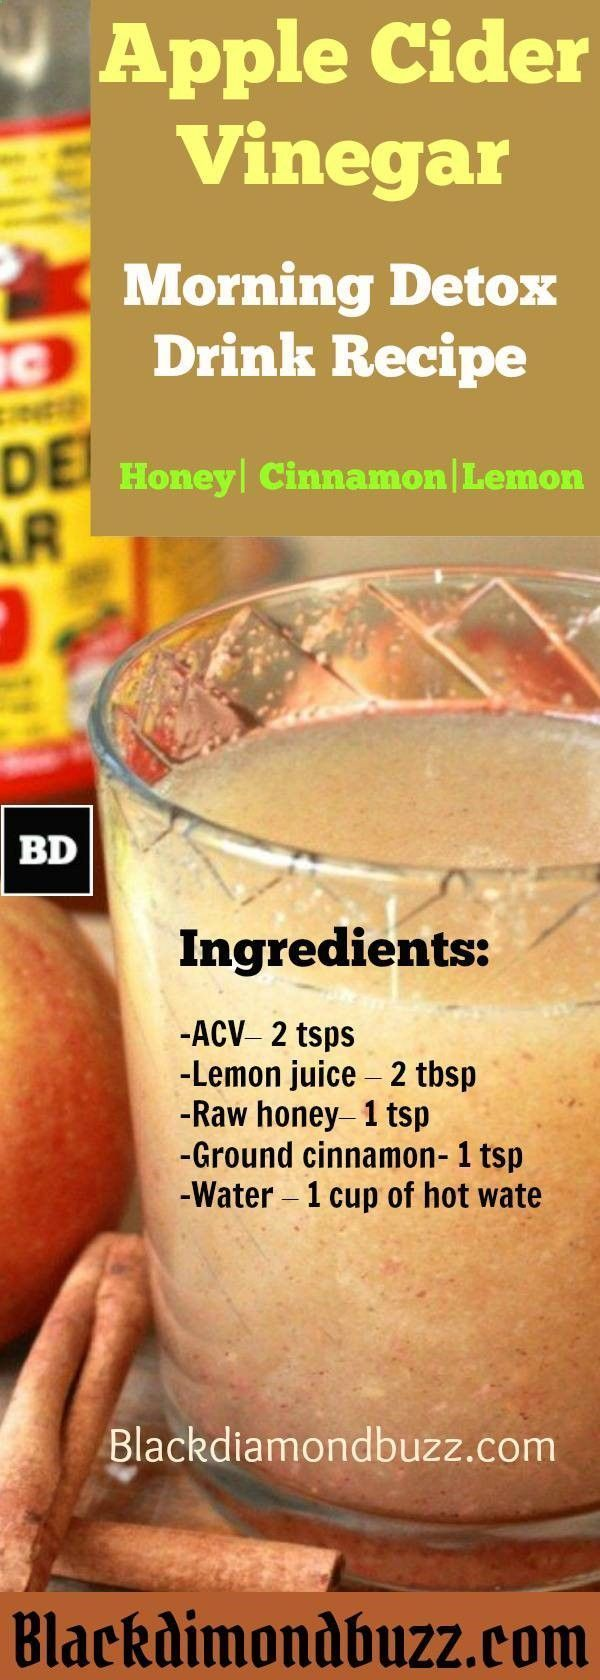 DIY Apple Cider Vinegar Detox Drink Recipe ( Honey, Cinnamon, and Lemon) for Fat Burning – Drink this Early in the Morning and Before Going to Bed at Night. Do you really want to detox your body from toxic substances and lose some fat? If so then this app